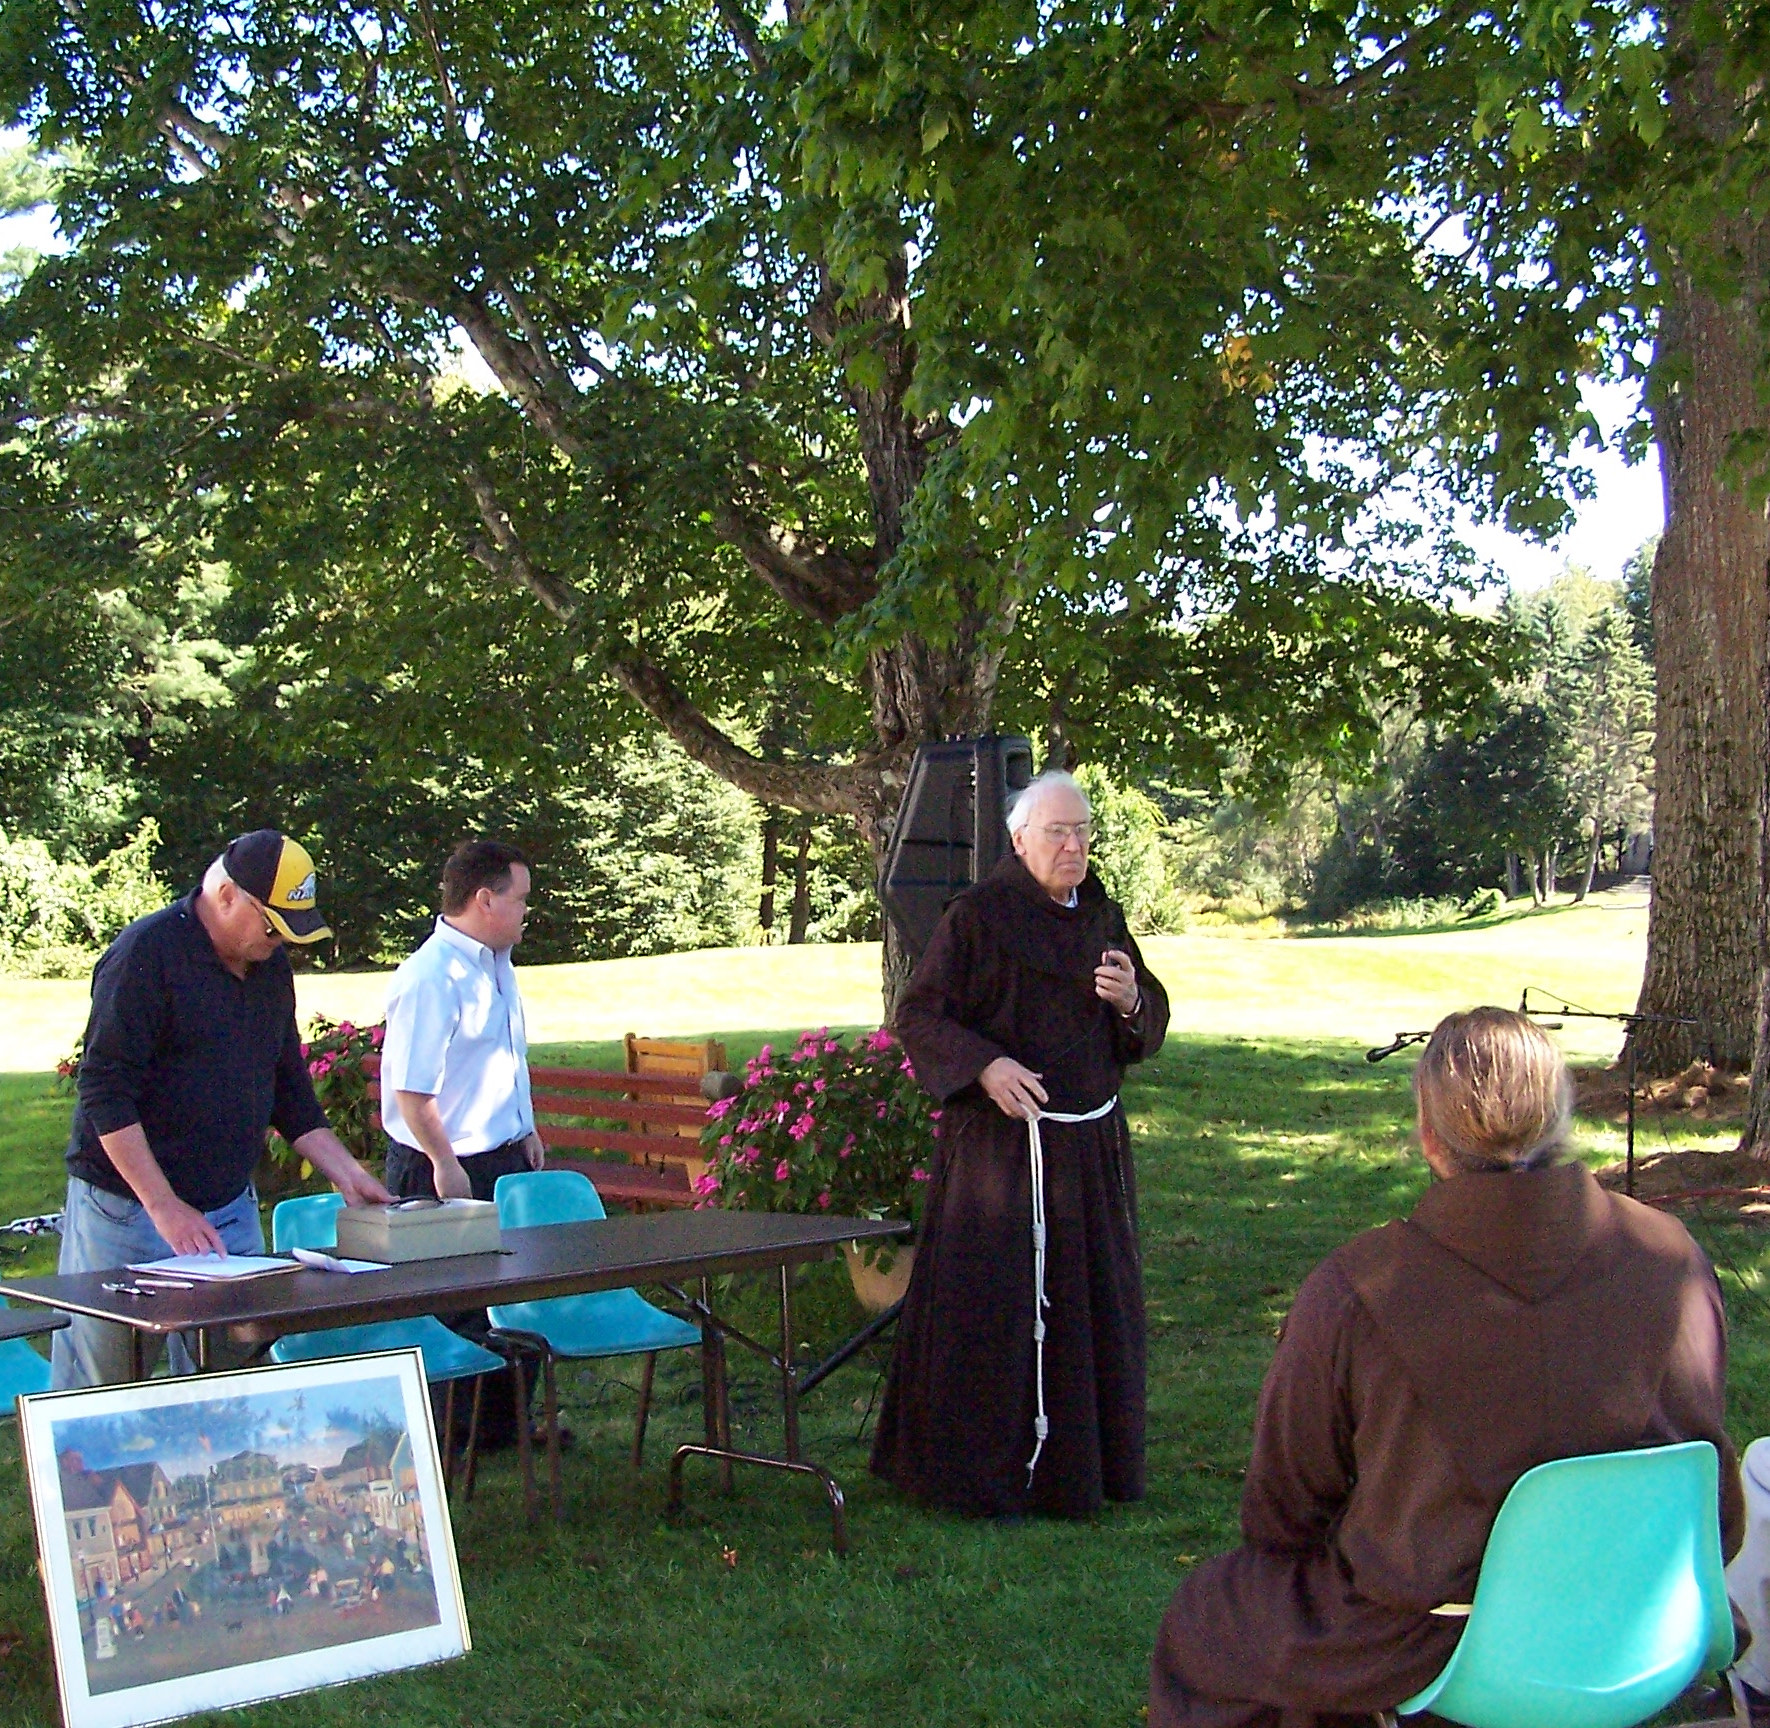 - LABOR DAY RAFFLE DRAWING & PICNIC WITH LIVE MUSICSunday September 1st, 2019The raffle tickets for the 18th Annual Summer Raffle are now available! To purchase tickets by mail, please fill out this FORM. Or tickets may be purchased after Mass on Sundays outside the Chapel entrance to St. Anthony's Monastery or at the Franciscan Guest House Monday through Friday 9 am to 5 pm. Payment by cash or check made out to the Franciscan Monastery. For more information see Events.